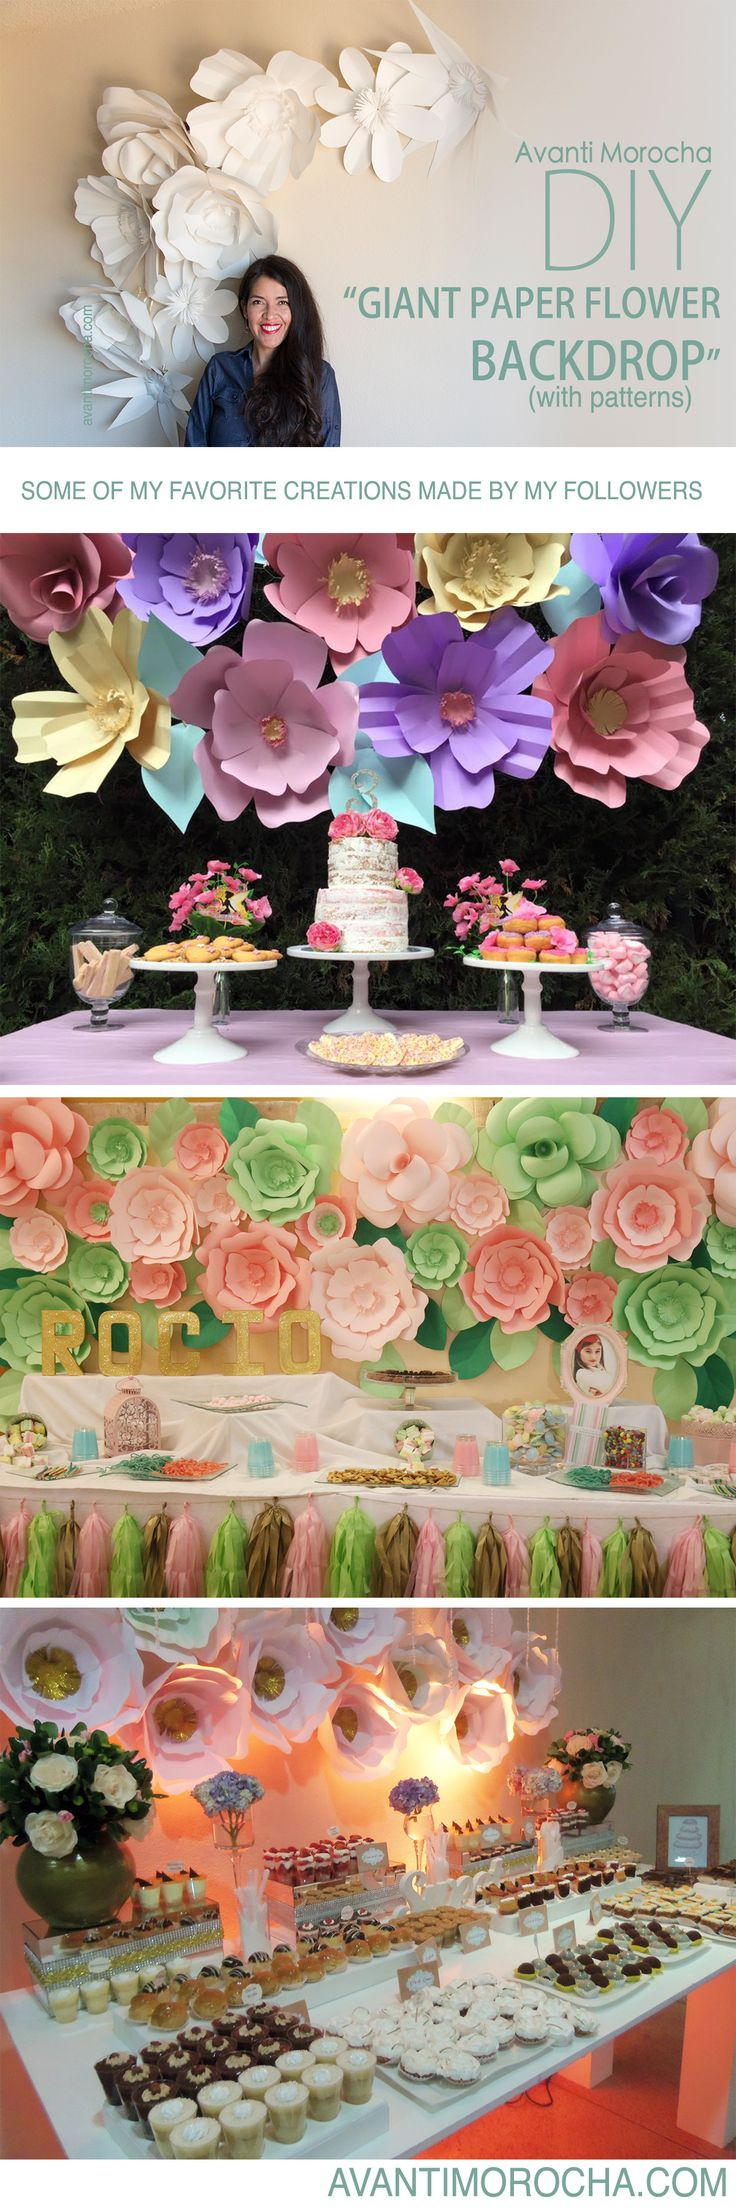 """DIY """" Giant Paper Flower Backdrop"""" Weddings, event decor. Download the flowers templates for free on avantimorocha.com / Please don't forget to share your creations on my Facebook page https://www.facebook.com/La... or tag me on Instagram @avantimorocha_1 I'd love to see them :)"""